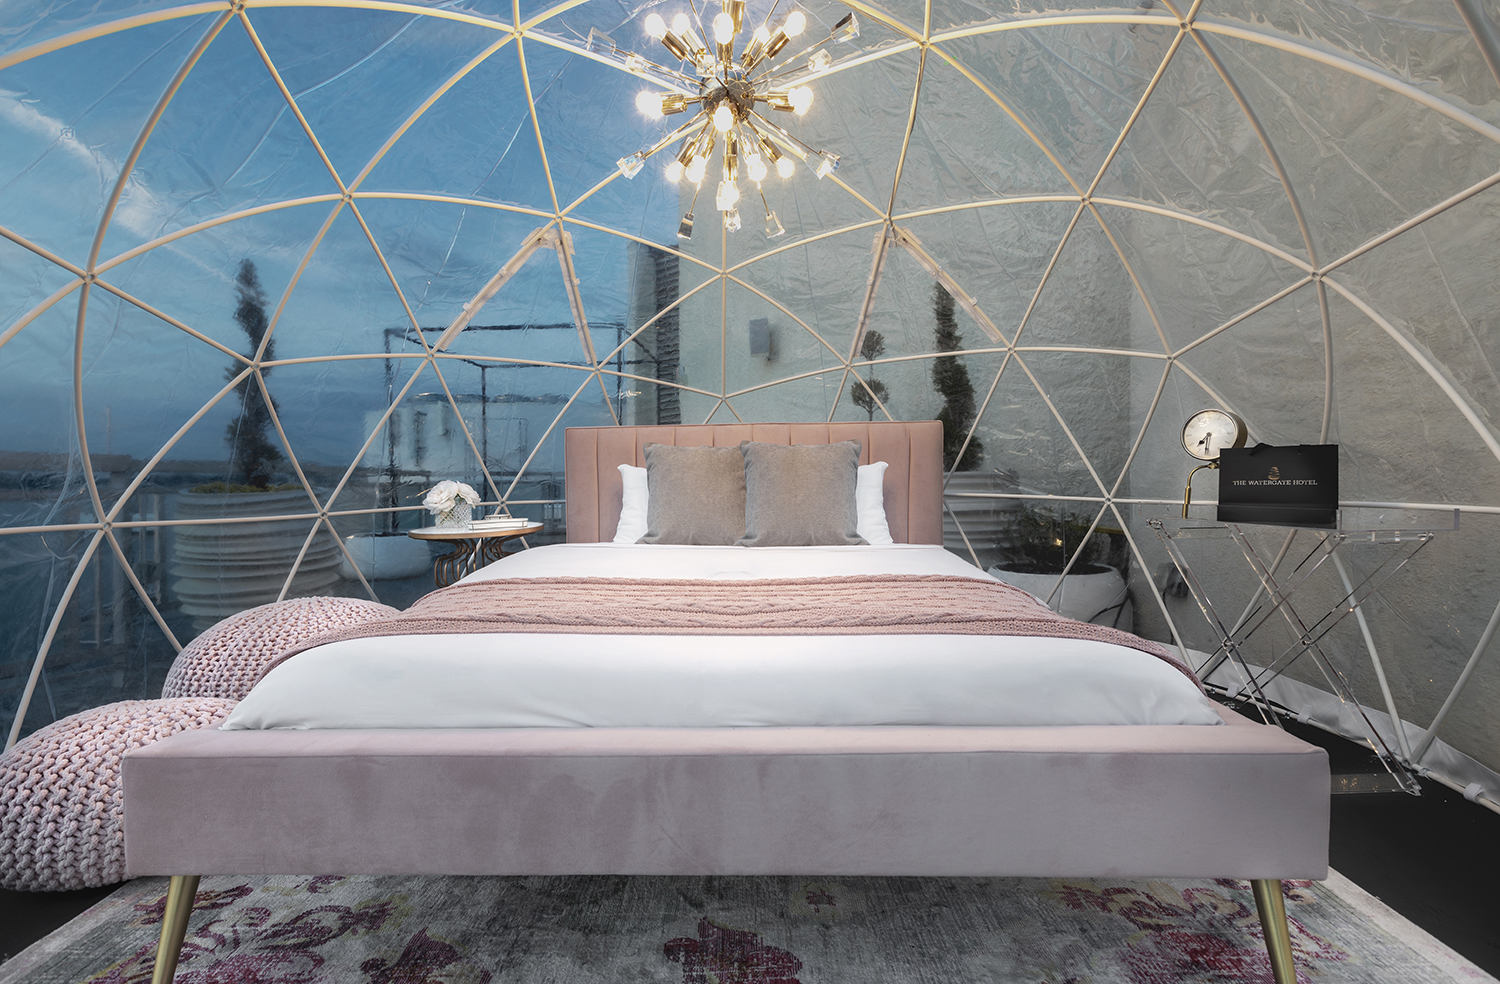 The Glamping With the Stars package allows guests to sleep overnight in a glamping globe outfitted by Terra Glamping.